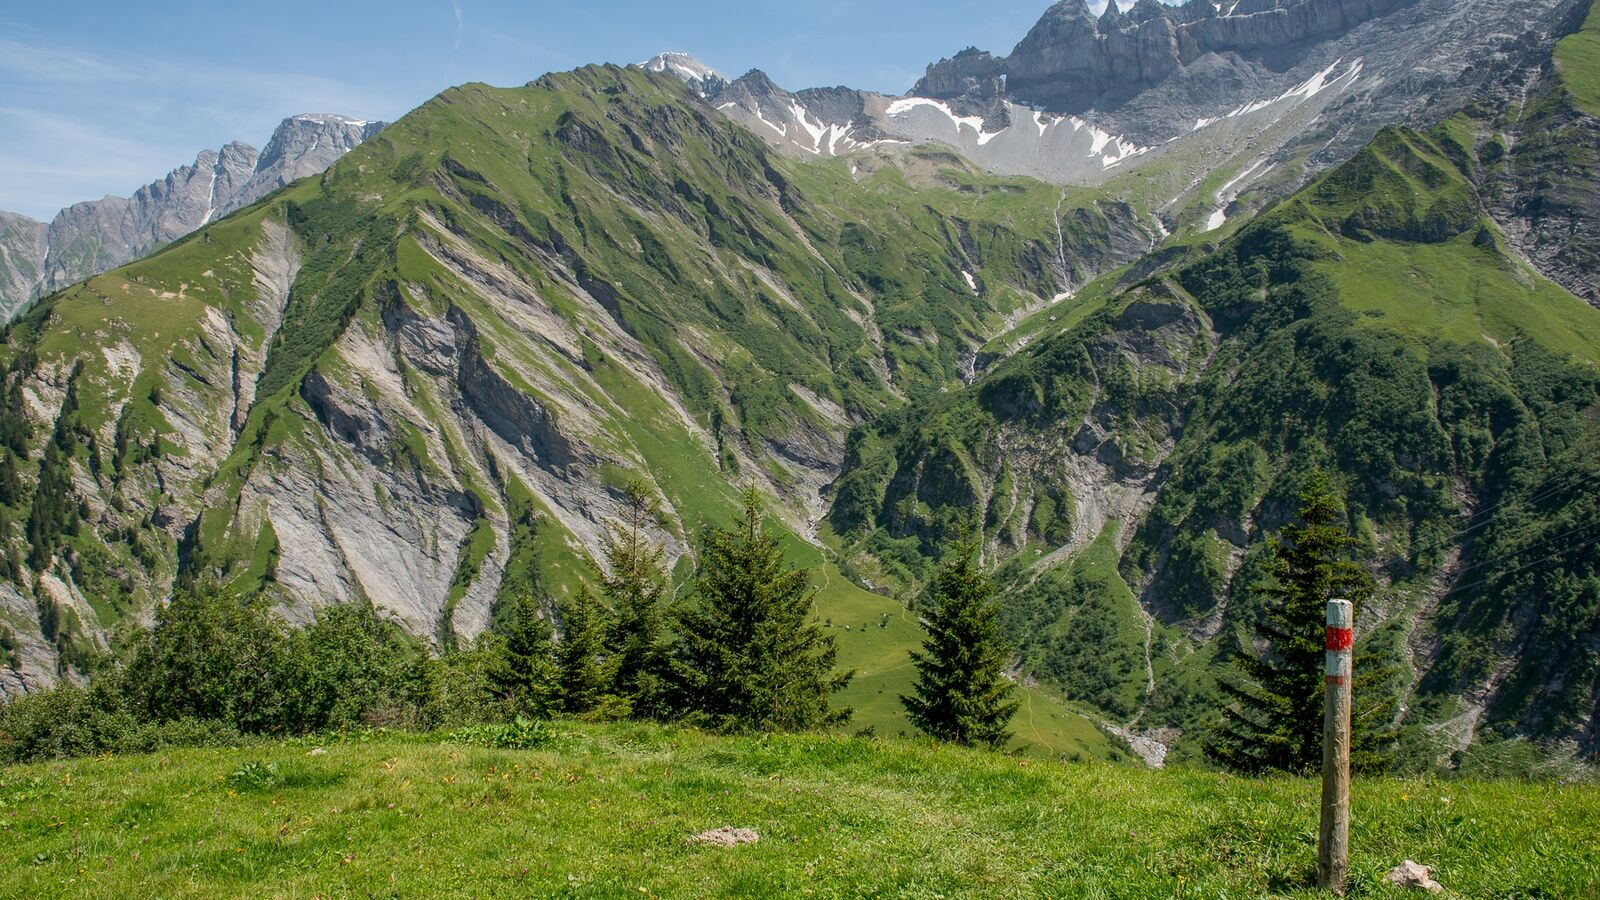 In the background, the magic line of the Glarus main overthrust